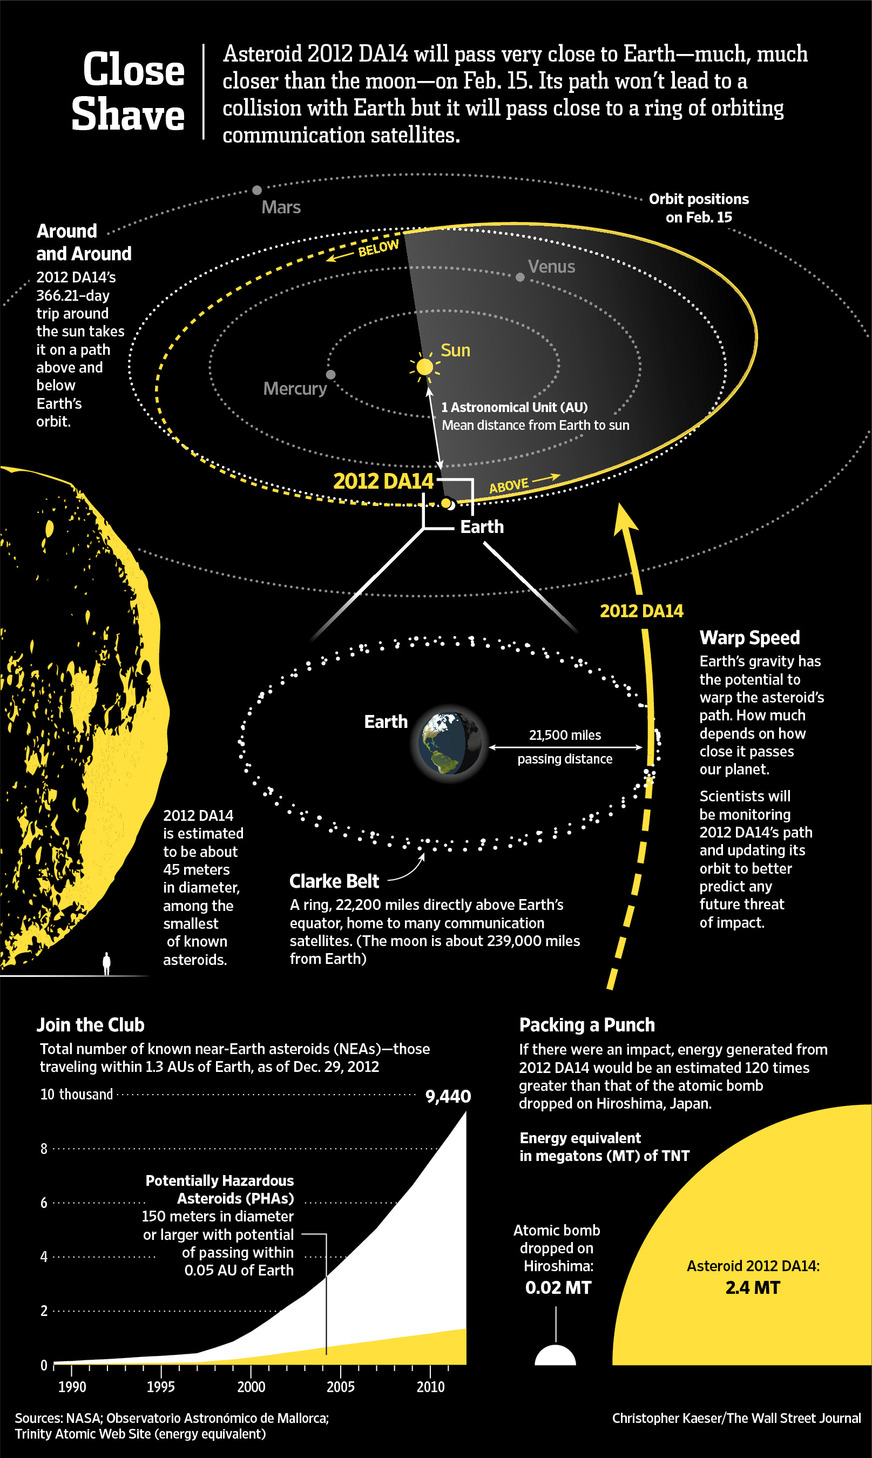 Close Shave - Asteroid 2012 DA-14 Will Pass Very Close to Earth